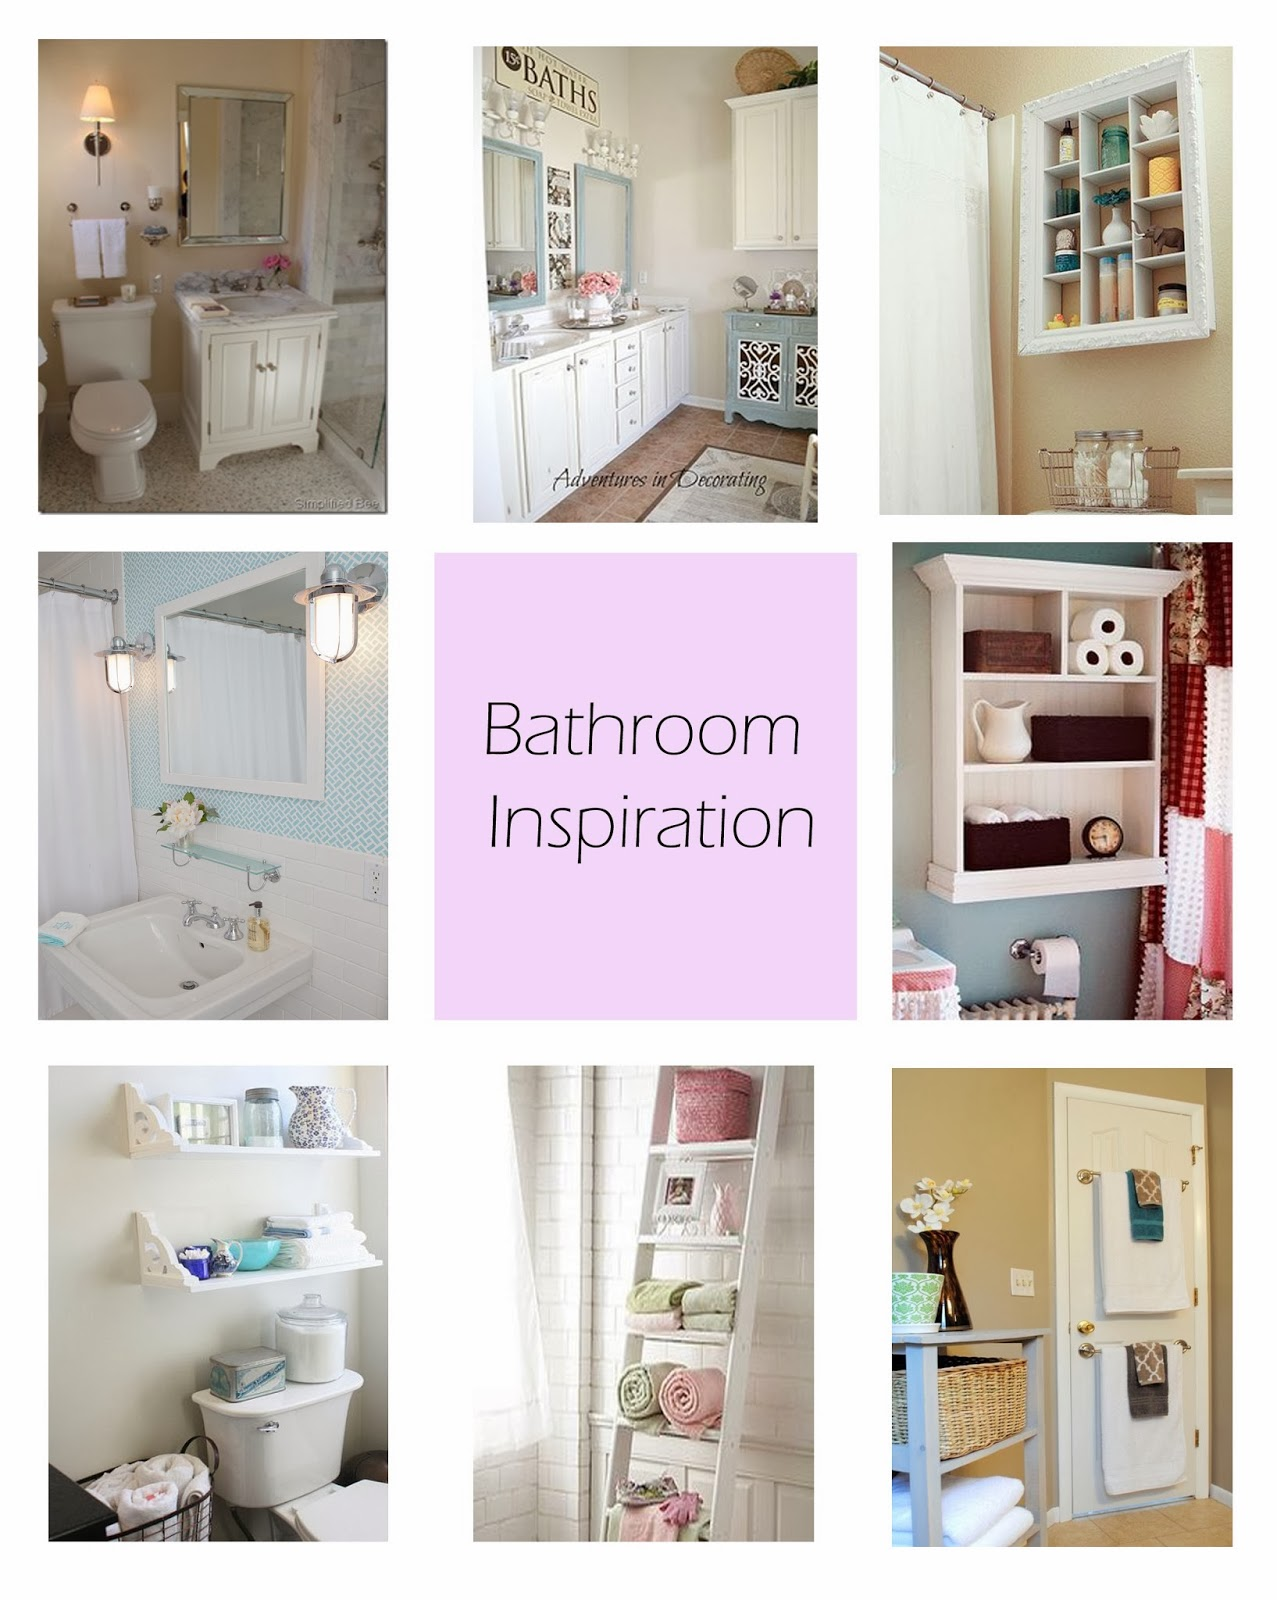 Bathroom Inspiration, Pinterest, Ameyjaney